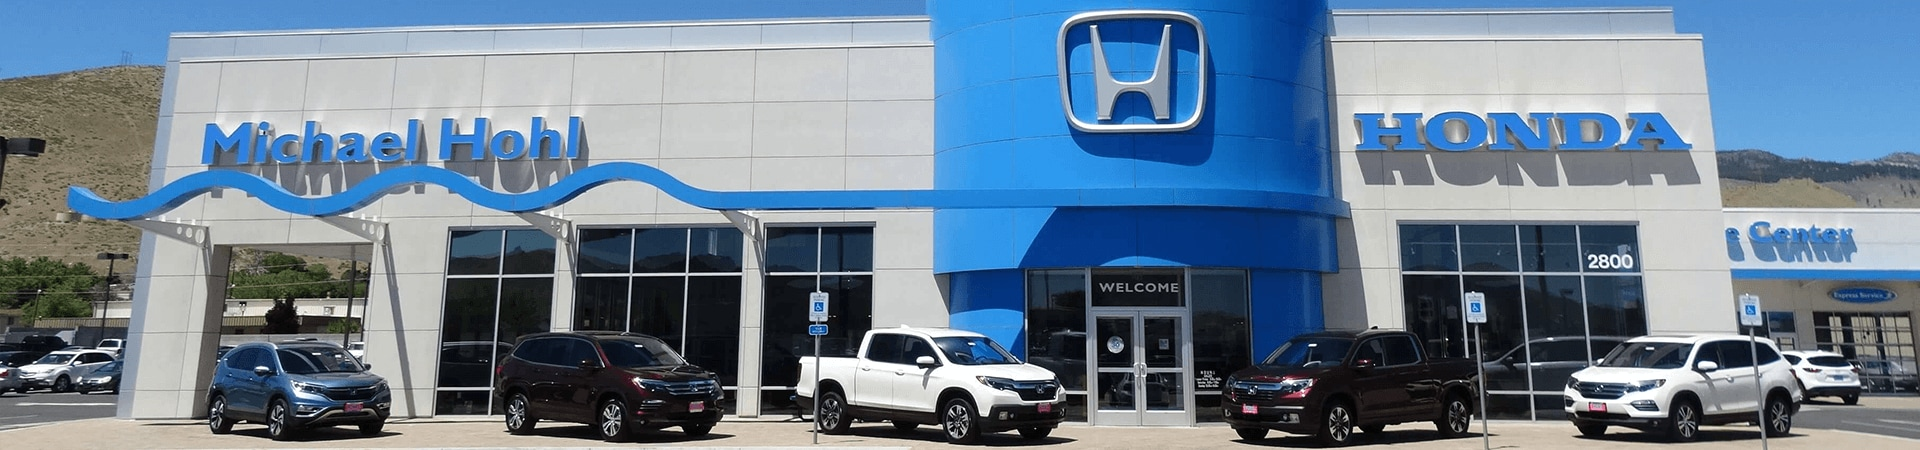 new honda and used car dealer in carson city michael hohl honda. Black Bedroom Furniture Sets. Home Design Ideas